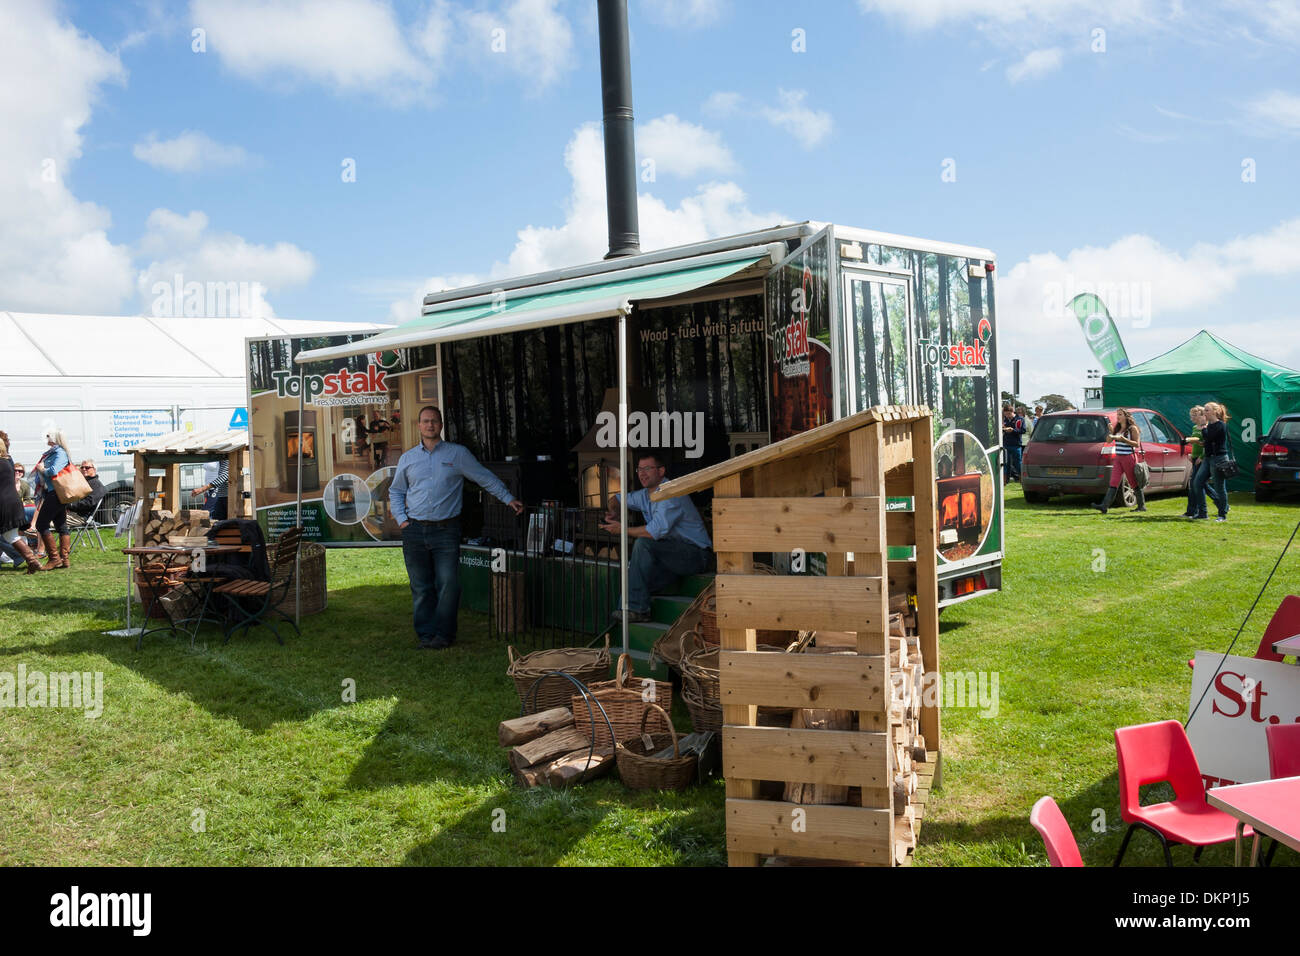 Wood fuel heating display trailer at agricultural showground - Stock Image